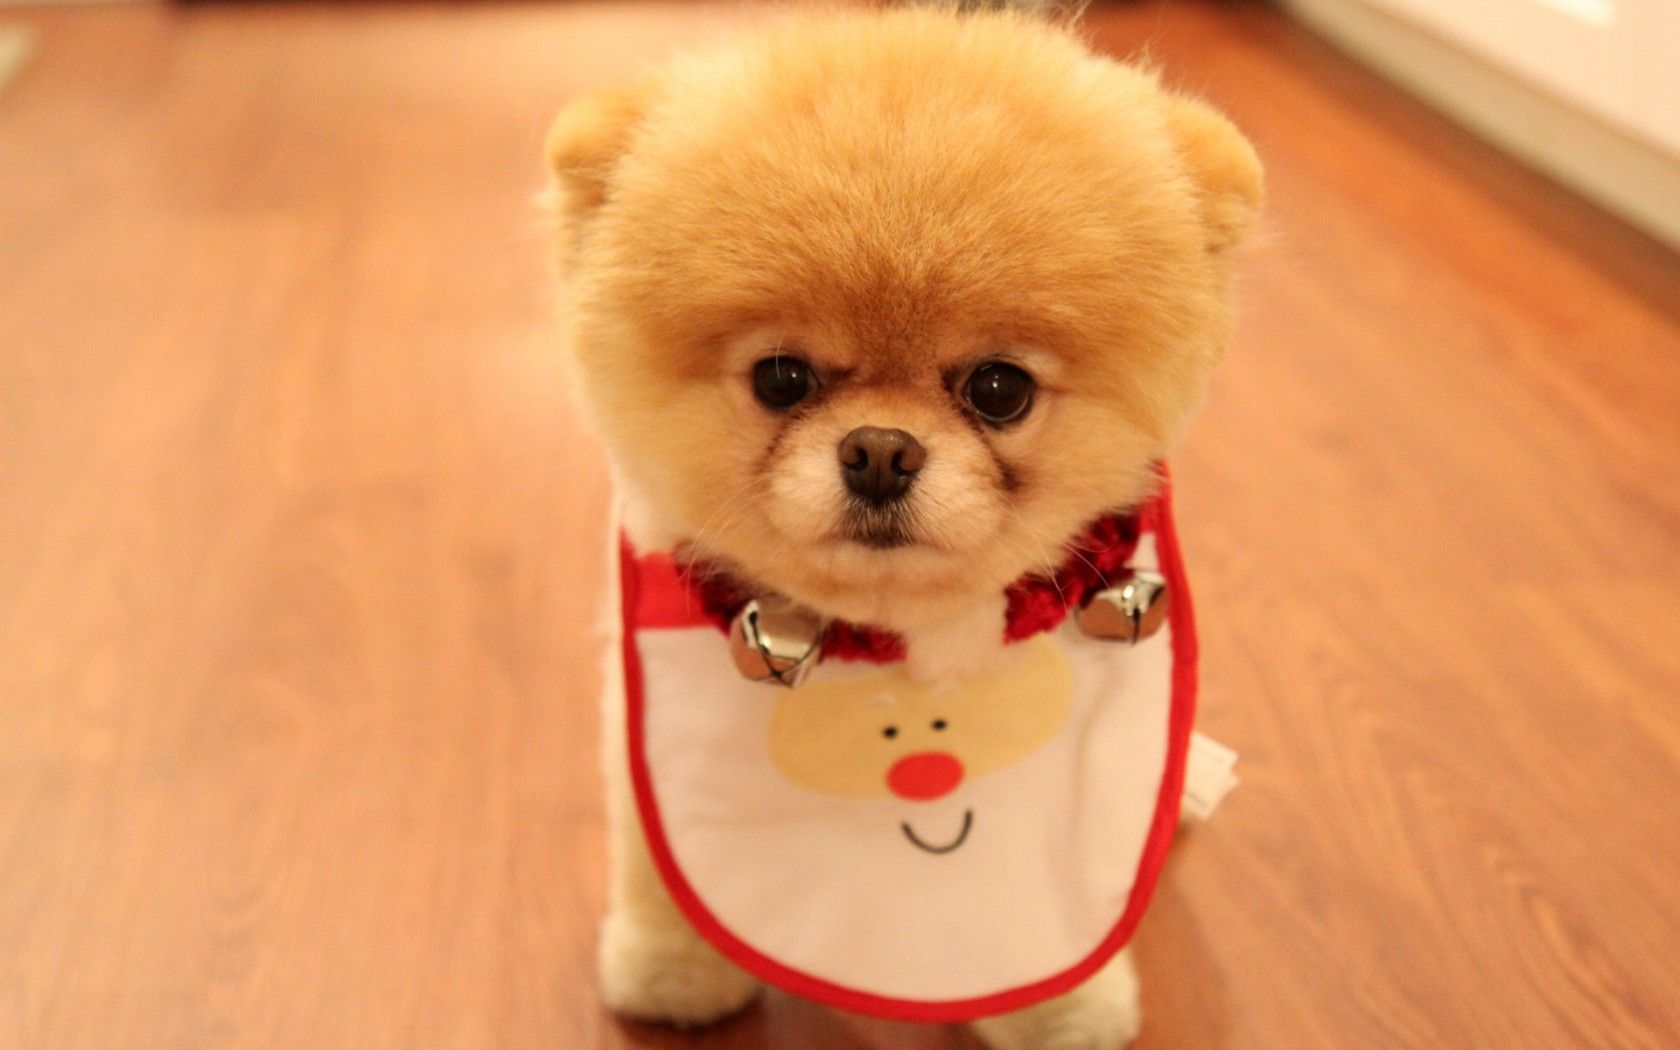 Cute Puppy Wallpapers Top Free Cute Puppy Backgrounds 75 Cute Puppy Dog Photos Great Inspire Cute Dogs Cute Puppy Wallpaper Cute Puppy Wallpaper Cute Puppies